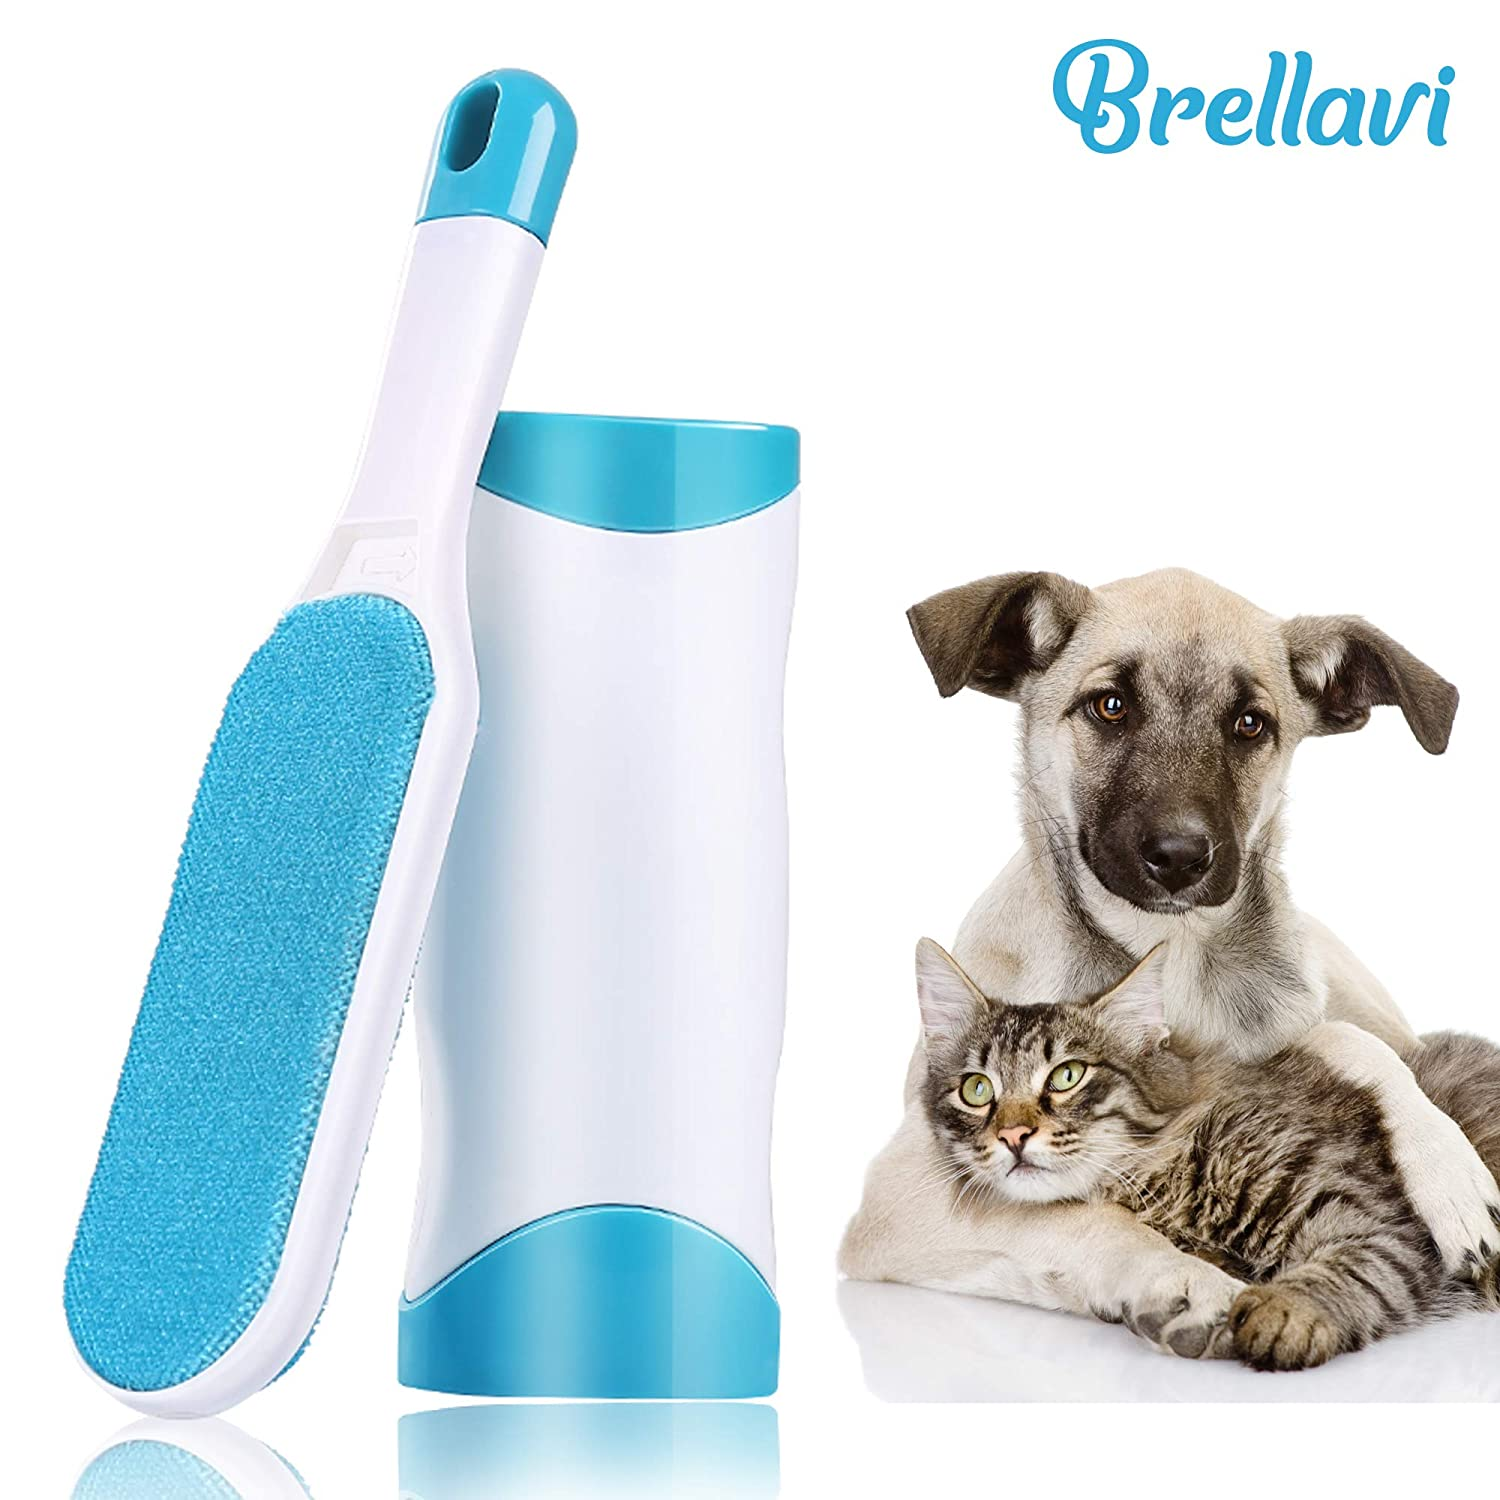 Remarkable Pet Hair Remover Brush Pet Hair Remover With Self Cleaning Base Double Sided Pet Hair Remover Brush Best Pet Hair Remover Brush For Removing Pet Short Links Chair Design For Home Short Linksinfo